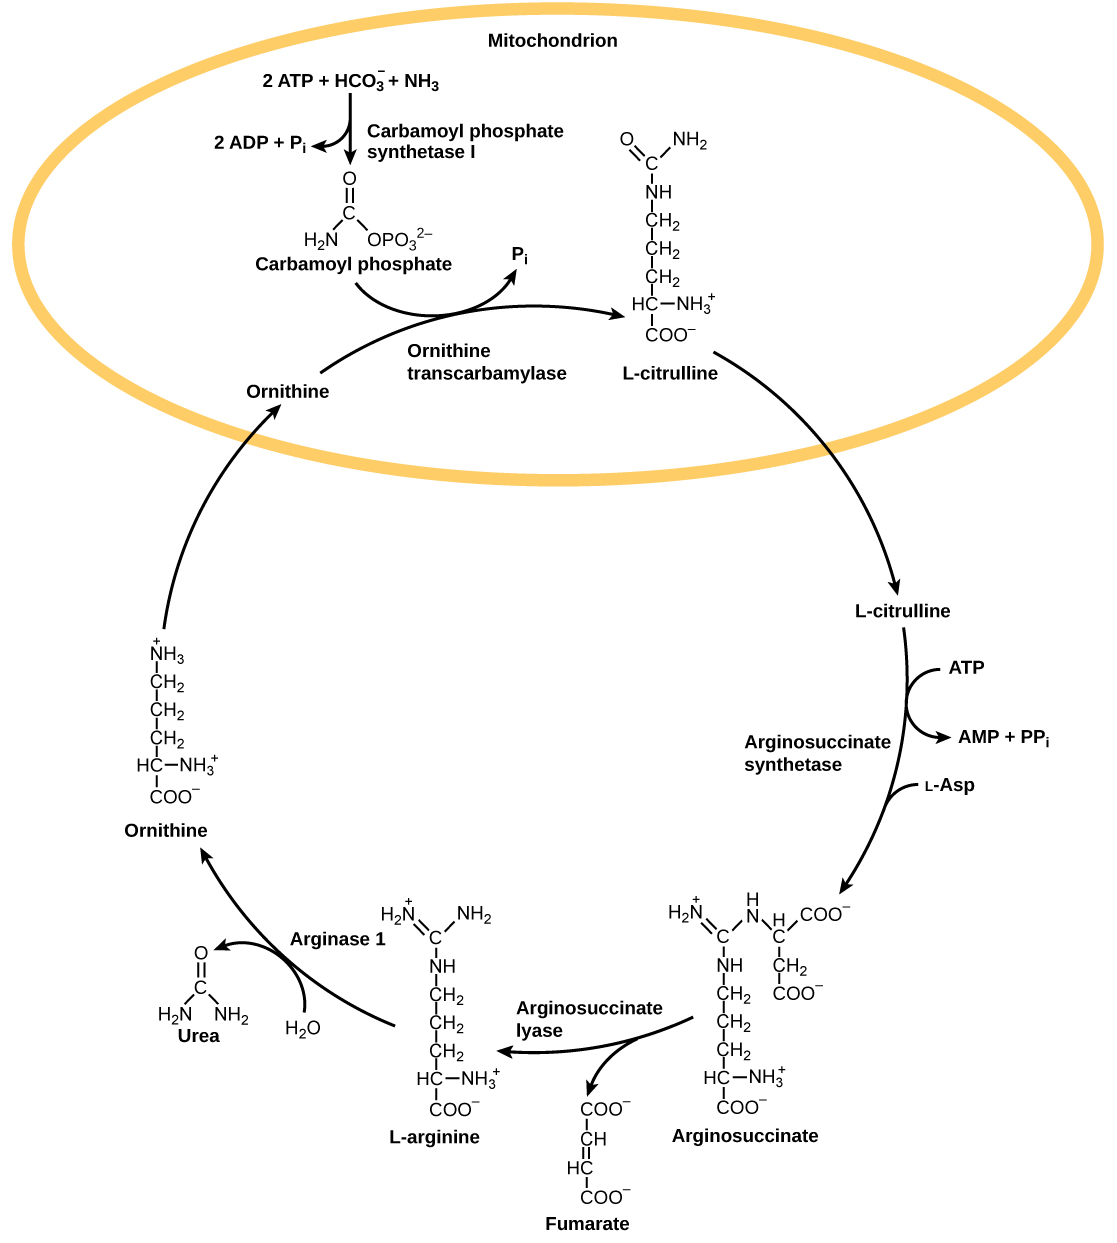 The urea cycle begins in the mitochondrion, where bicarbonate, shown as upper case H upper case C upper case O subscript 3 baseline is combined with ammonia, shown as upper case N upper case H subscript 3 baseline to make carbamoyl phosphate. Two A T P are used in the process. Ornithine transcarbamylase adds the carbamoyl phosphate to a five-carbon amino acid called ornithine to make L citrulline. L citrulline leaves the mitochondrion, and an enzyme called arginosuccinate synthetase adds a four carbon amino acid called L aspartate to it to make arginosuccinate. In the process, one A T P is converted to A M P and upper case P upper case P lower case i. Arginosuccinate lyase removes a four carbon fumarate molecule from the arginosuccinate, forming the six carbon amino acid L arginine. Arginase 1 removes a urea molecule from the L arginine, forming ornithine in the process. Urea has a single carbon double bonded to an oxygen and single bonded to two ammonia groups. Ornithine enters the mitochondrion, completing the cycle.